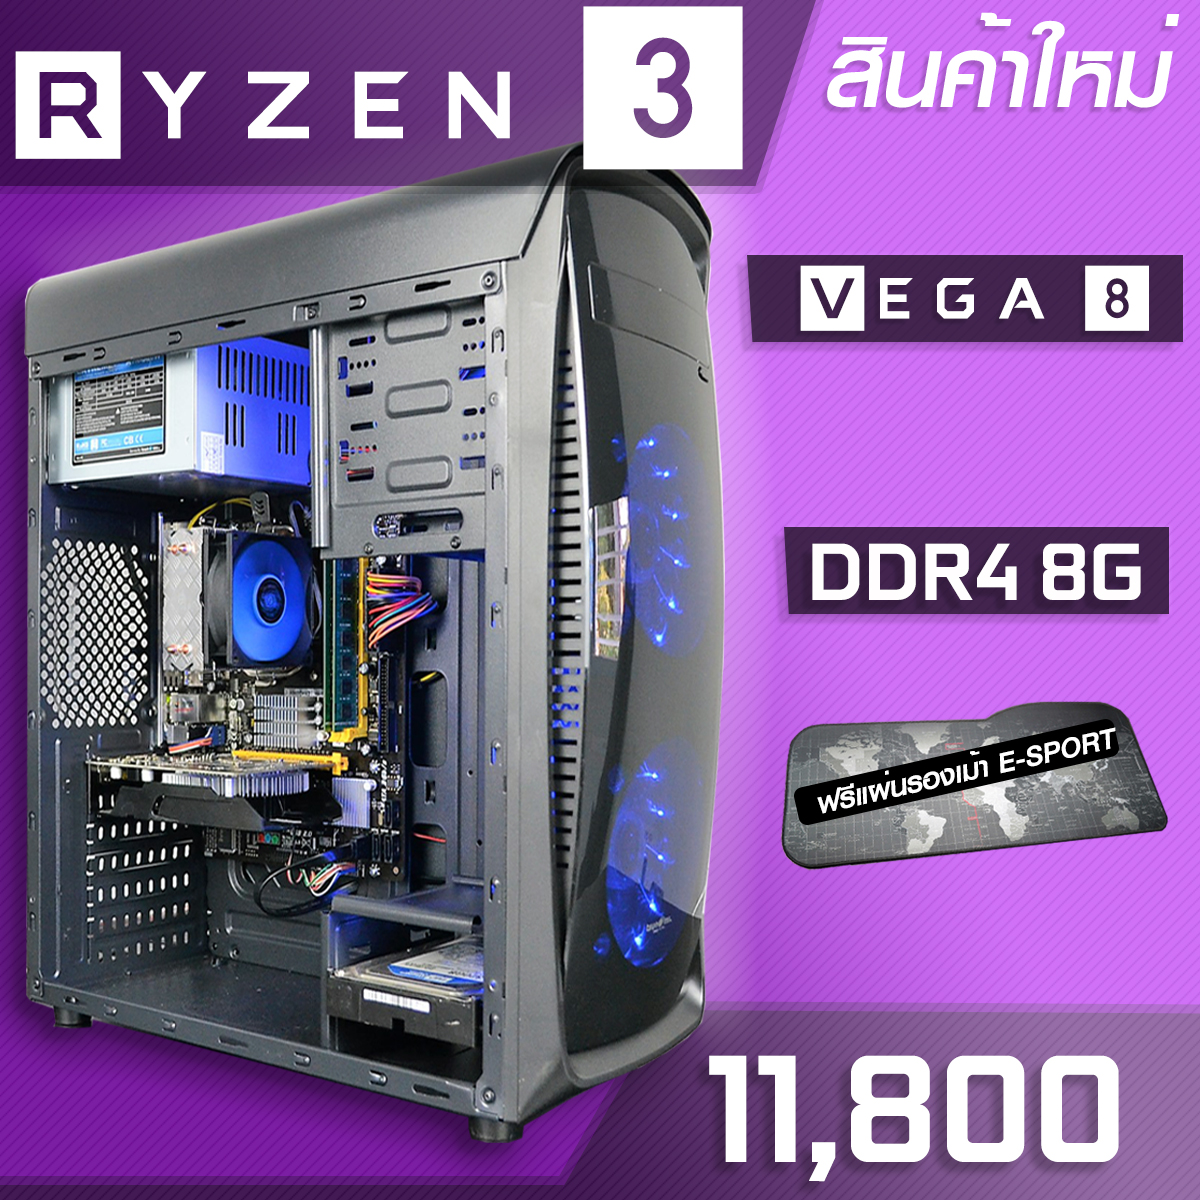 AMD RYZEN 3 2200G | DDR4 BUS 2400 8G | 1TB 7200Rpm